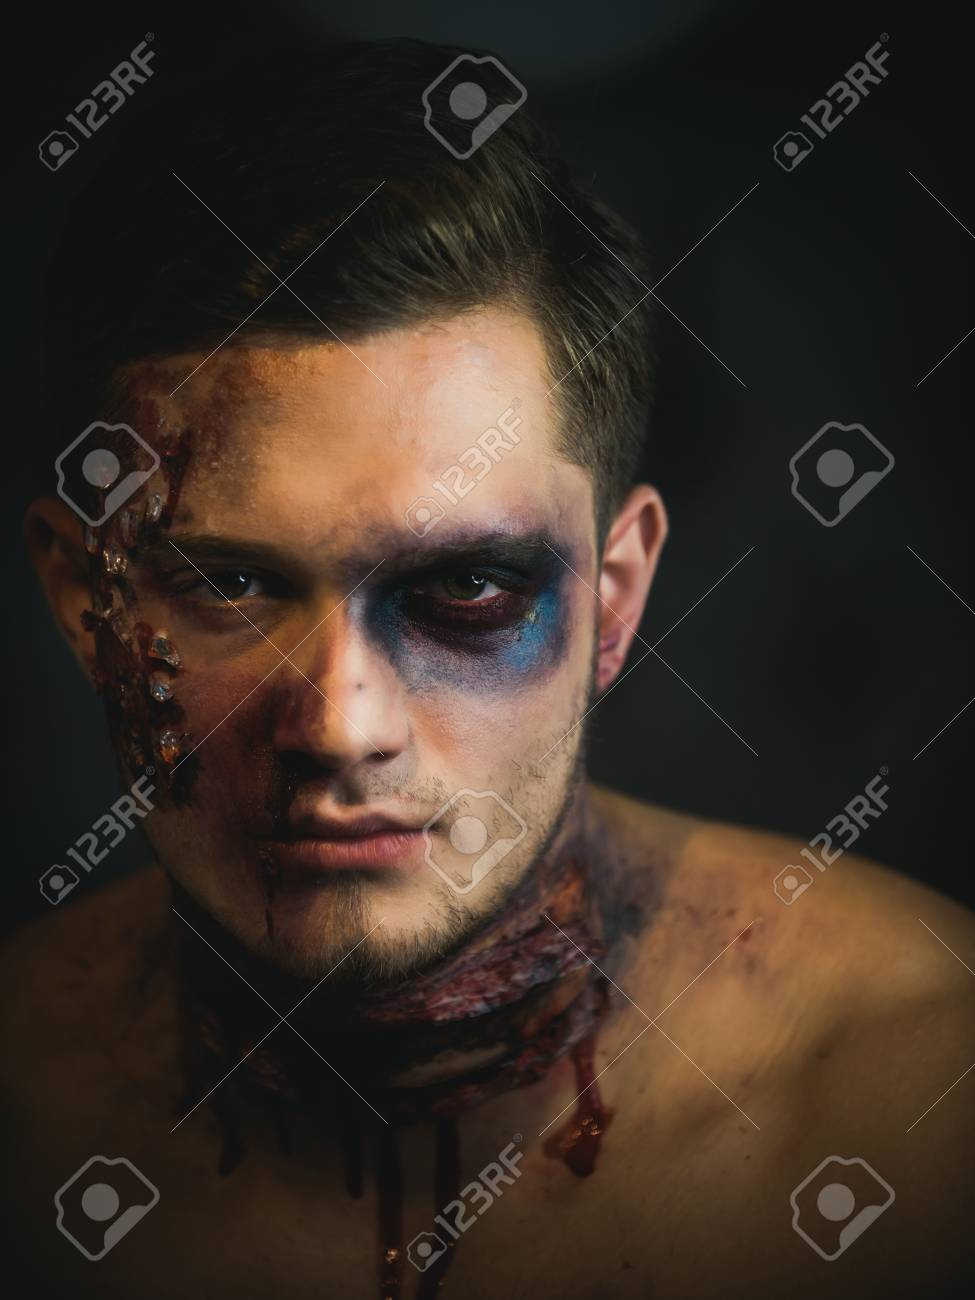 Halloween Make Up Men.Halloween Guy With Blood And Wounds Holiday And Celebration